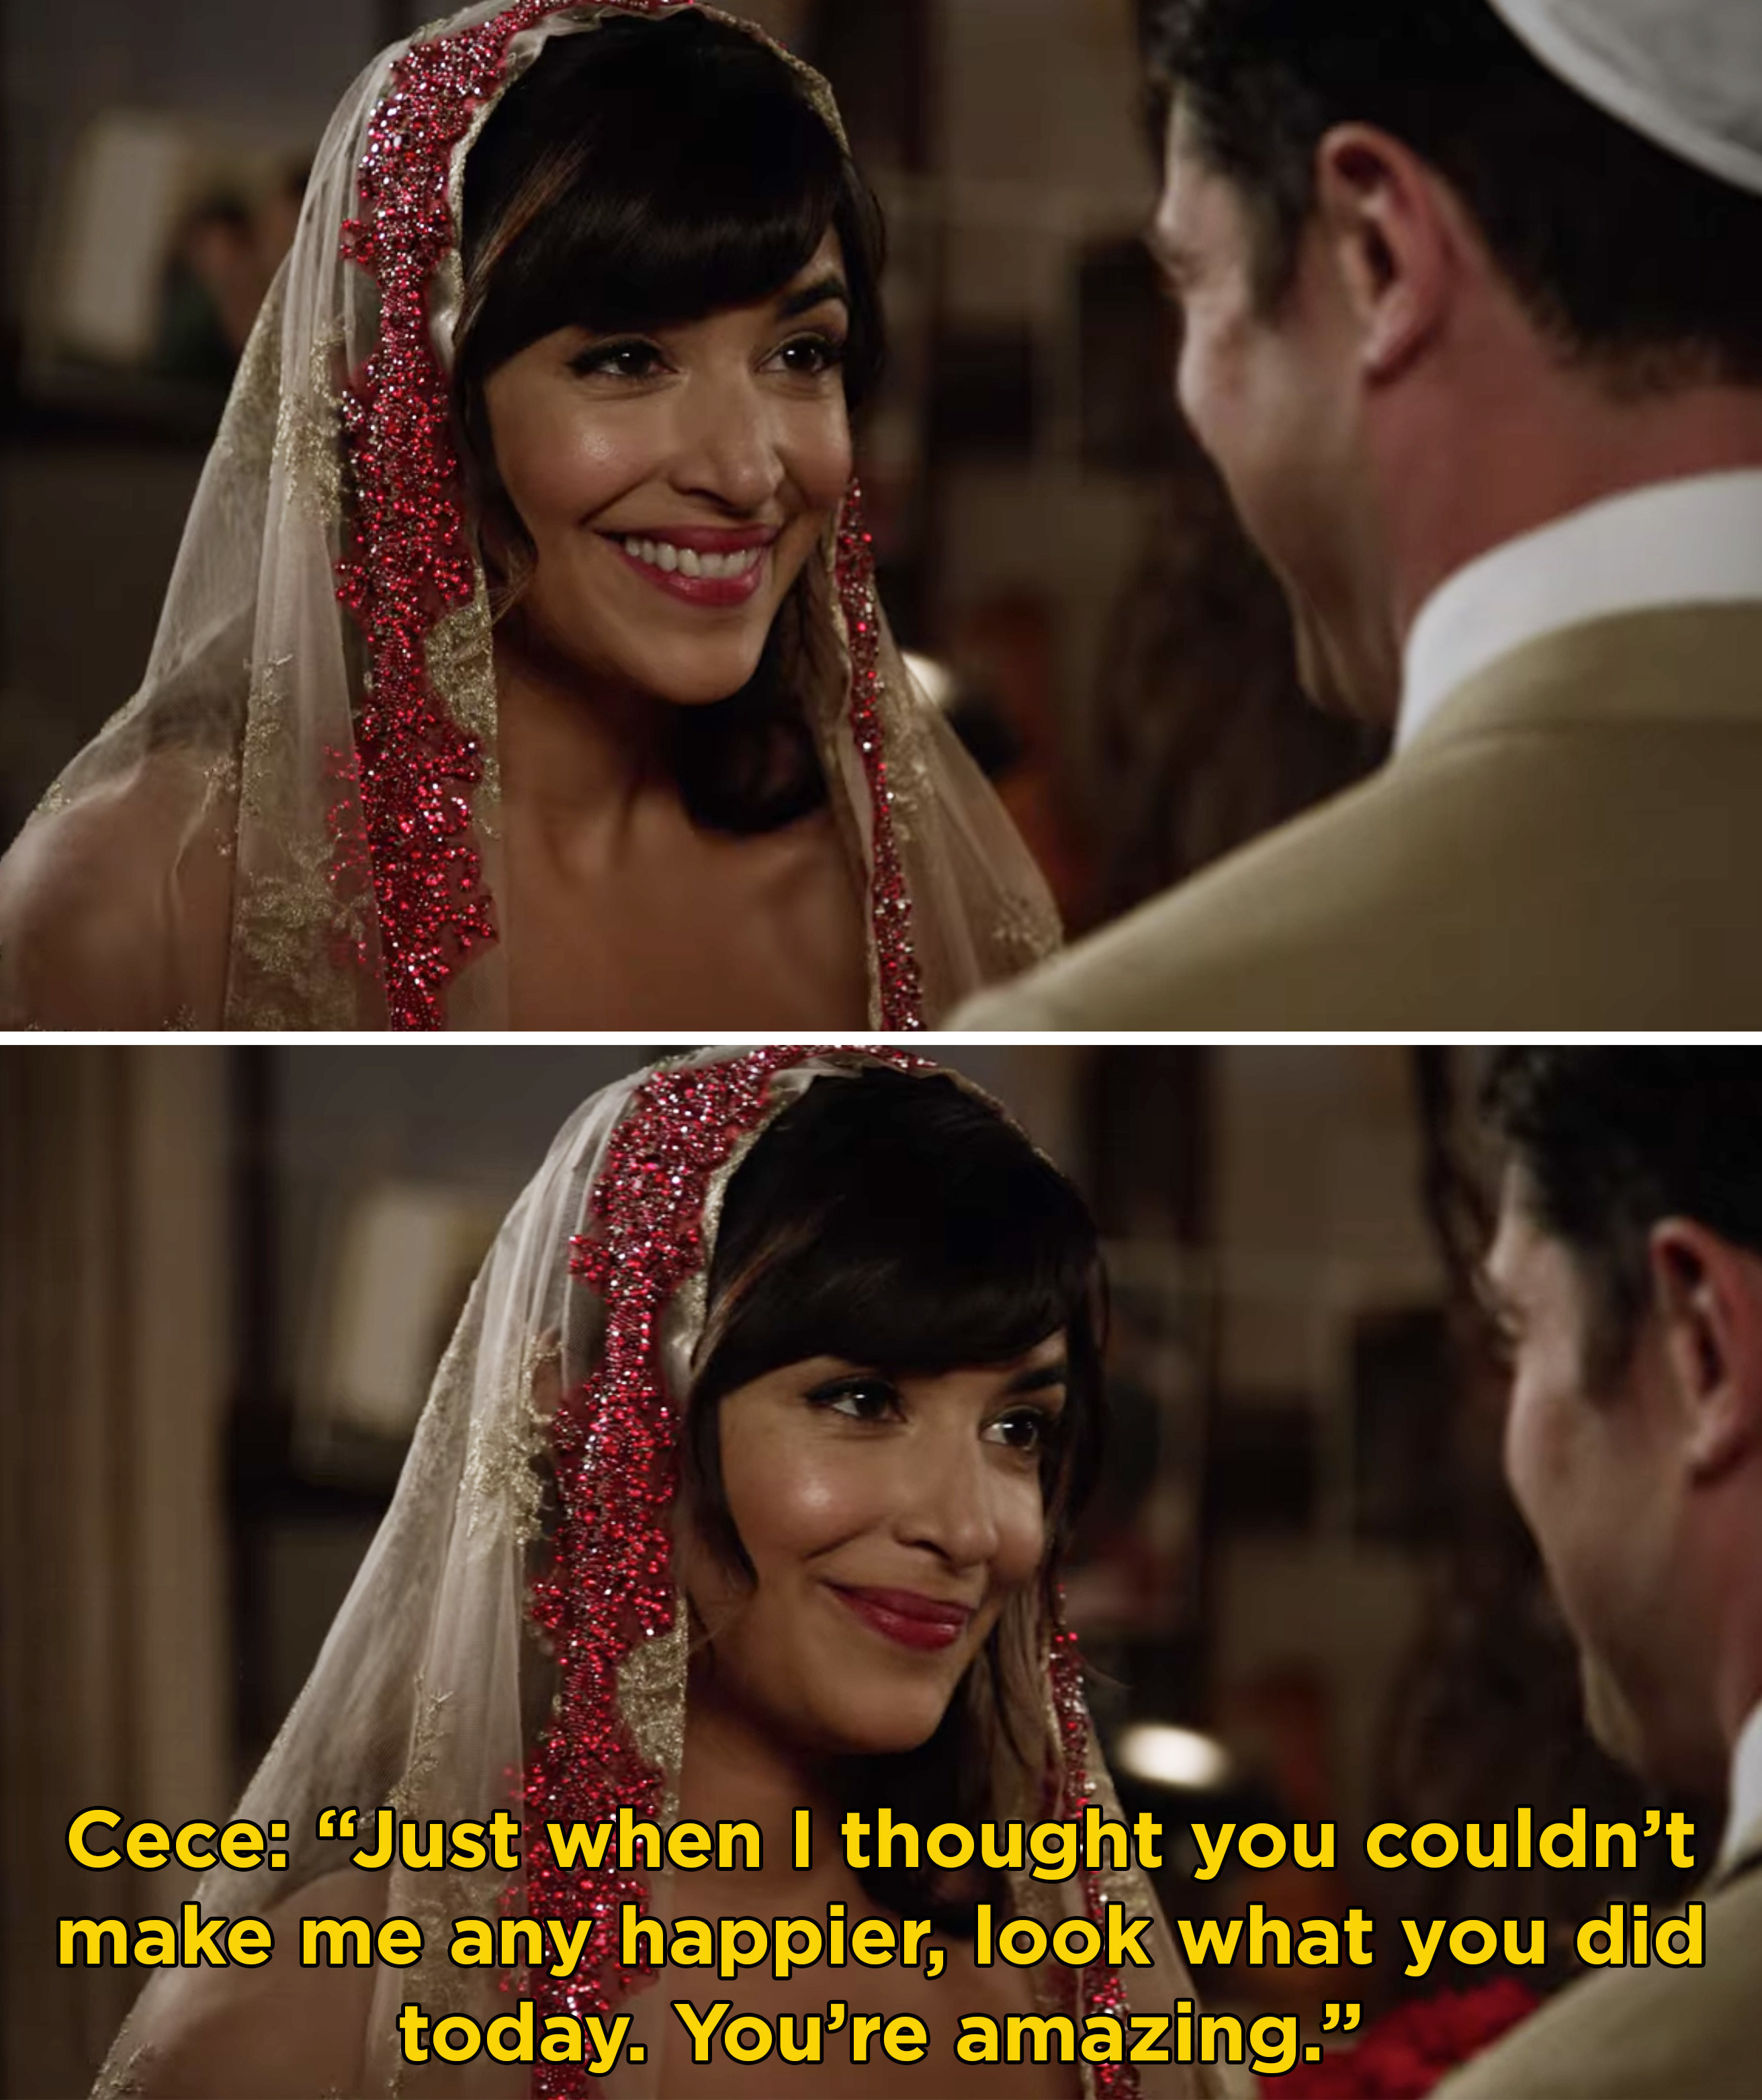 """Cece at her wedding to Schmidt saying, """"Just when I thought you couldn't make me any happier, look what you did today. You're amazing"""""""